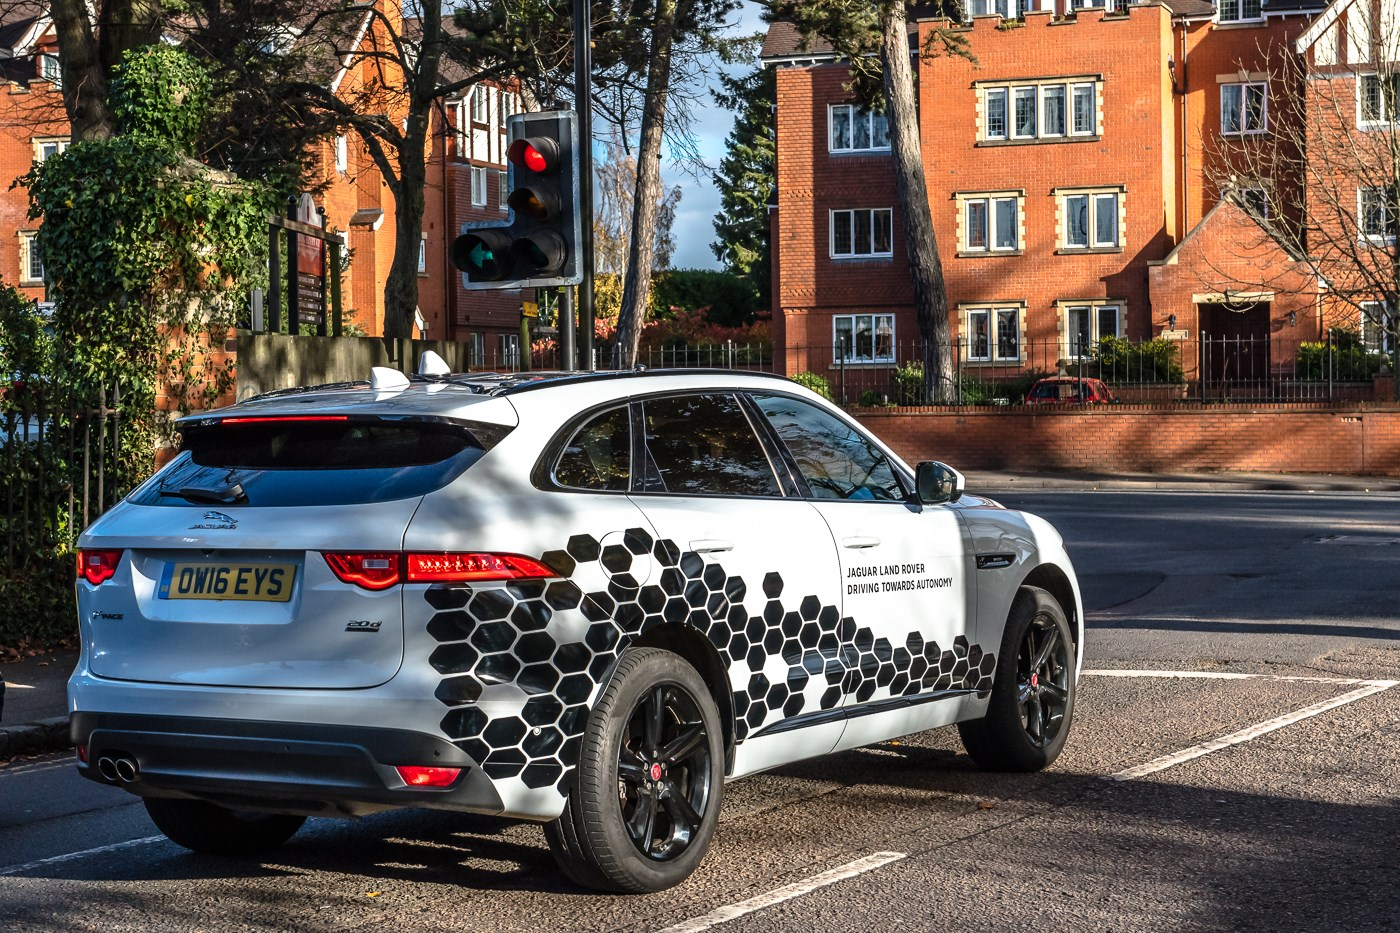 £19m boost for region's self-driving vehicle sector